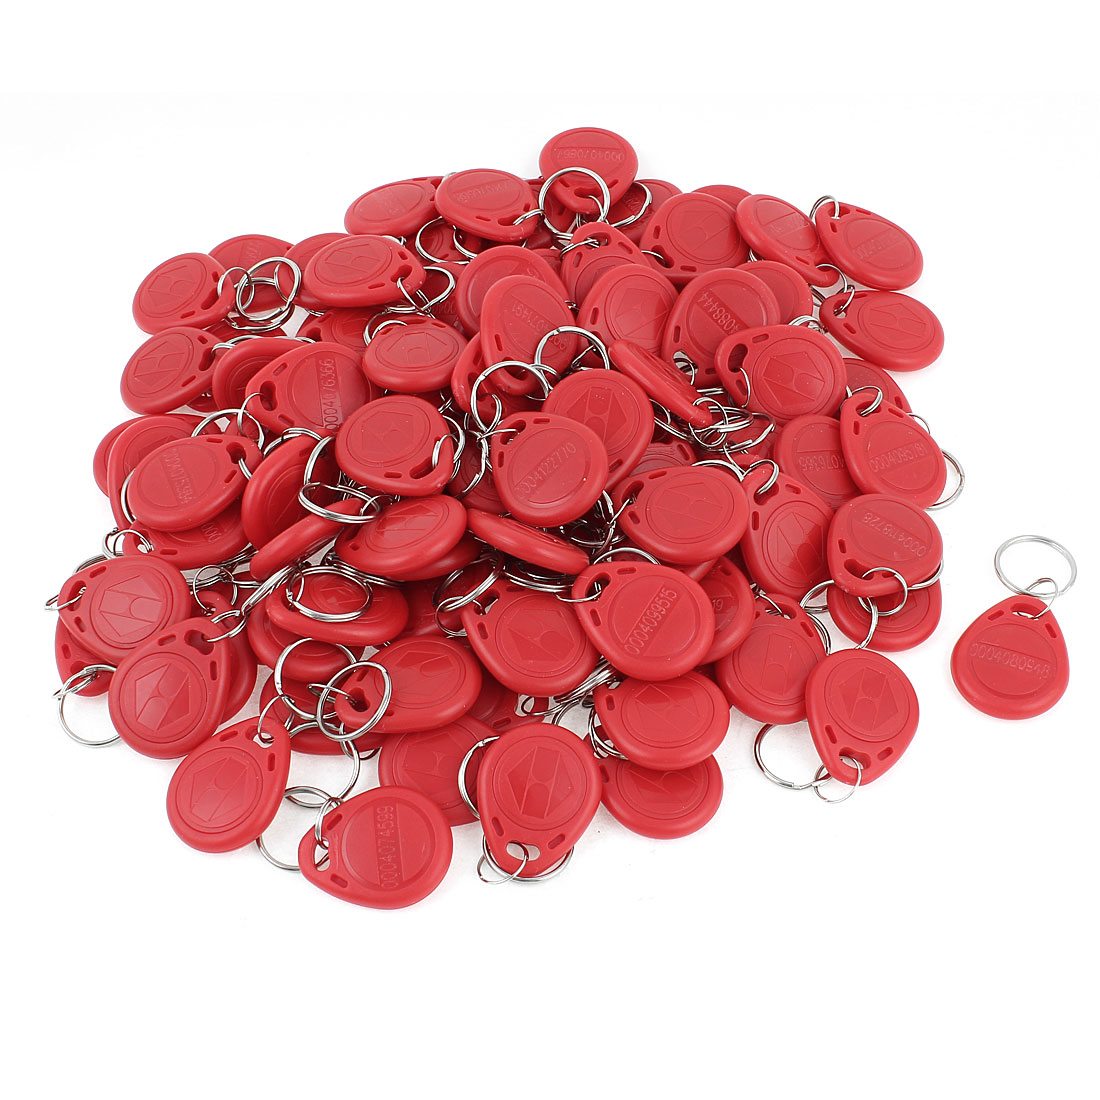 100Pcs Red EM4100 125Khz Rfid Proximity Door Control ID Card Token Tag Key Ring